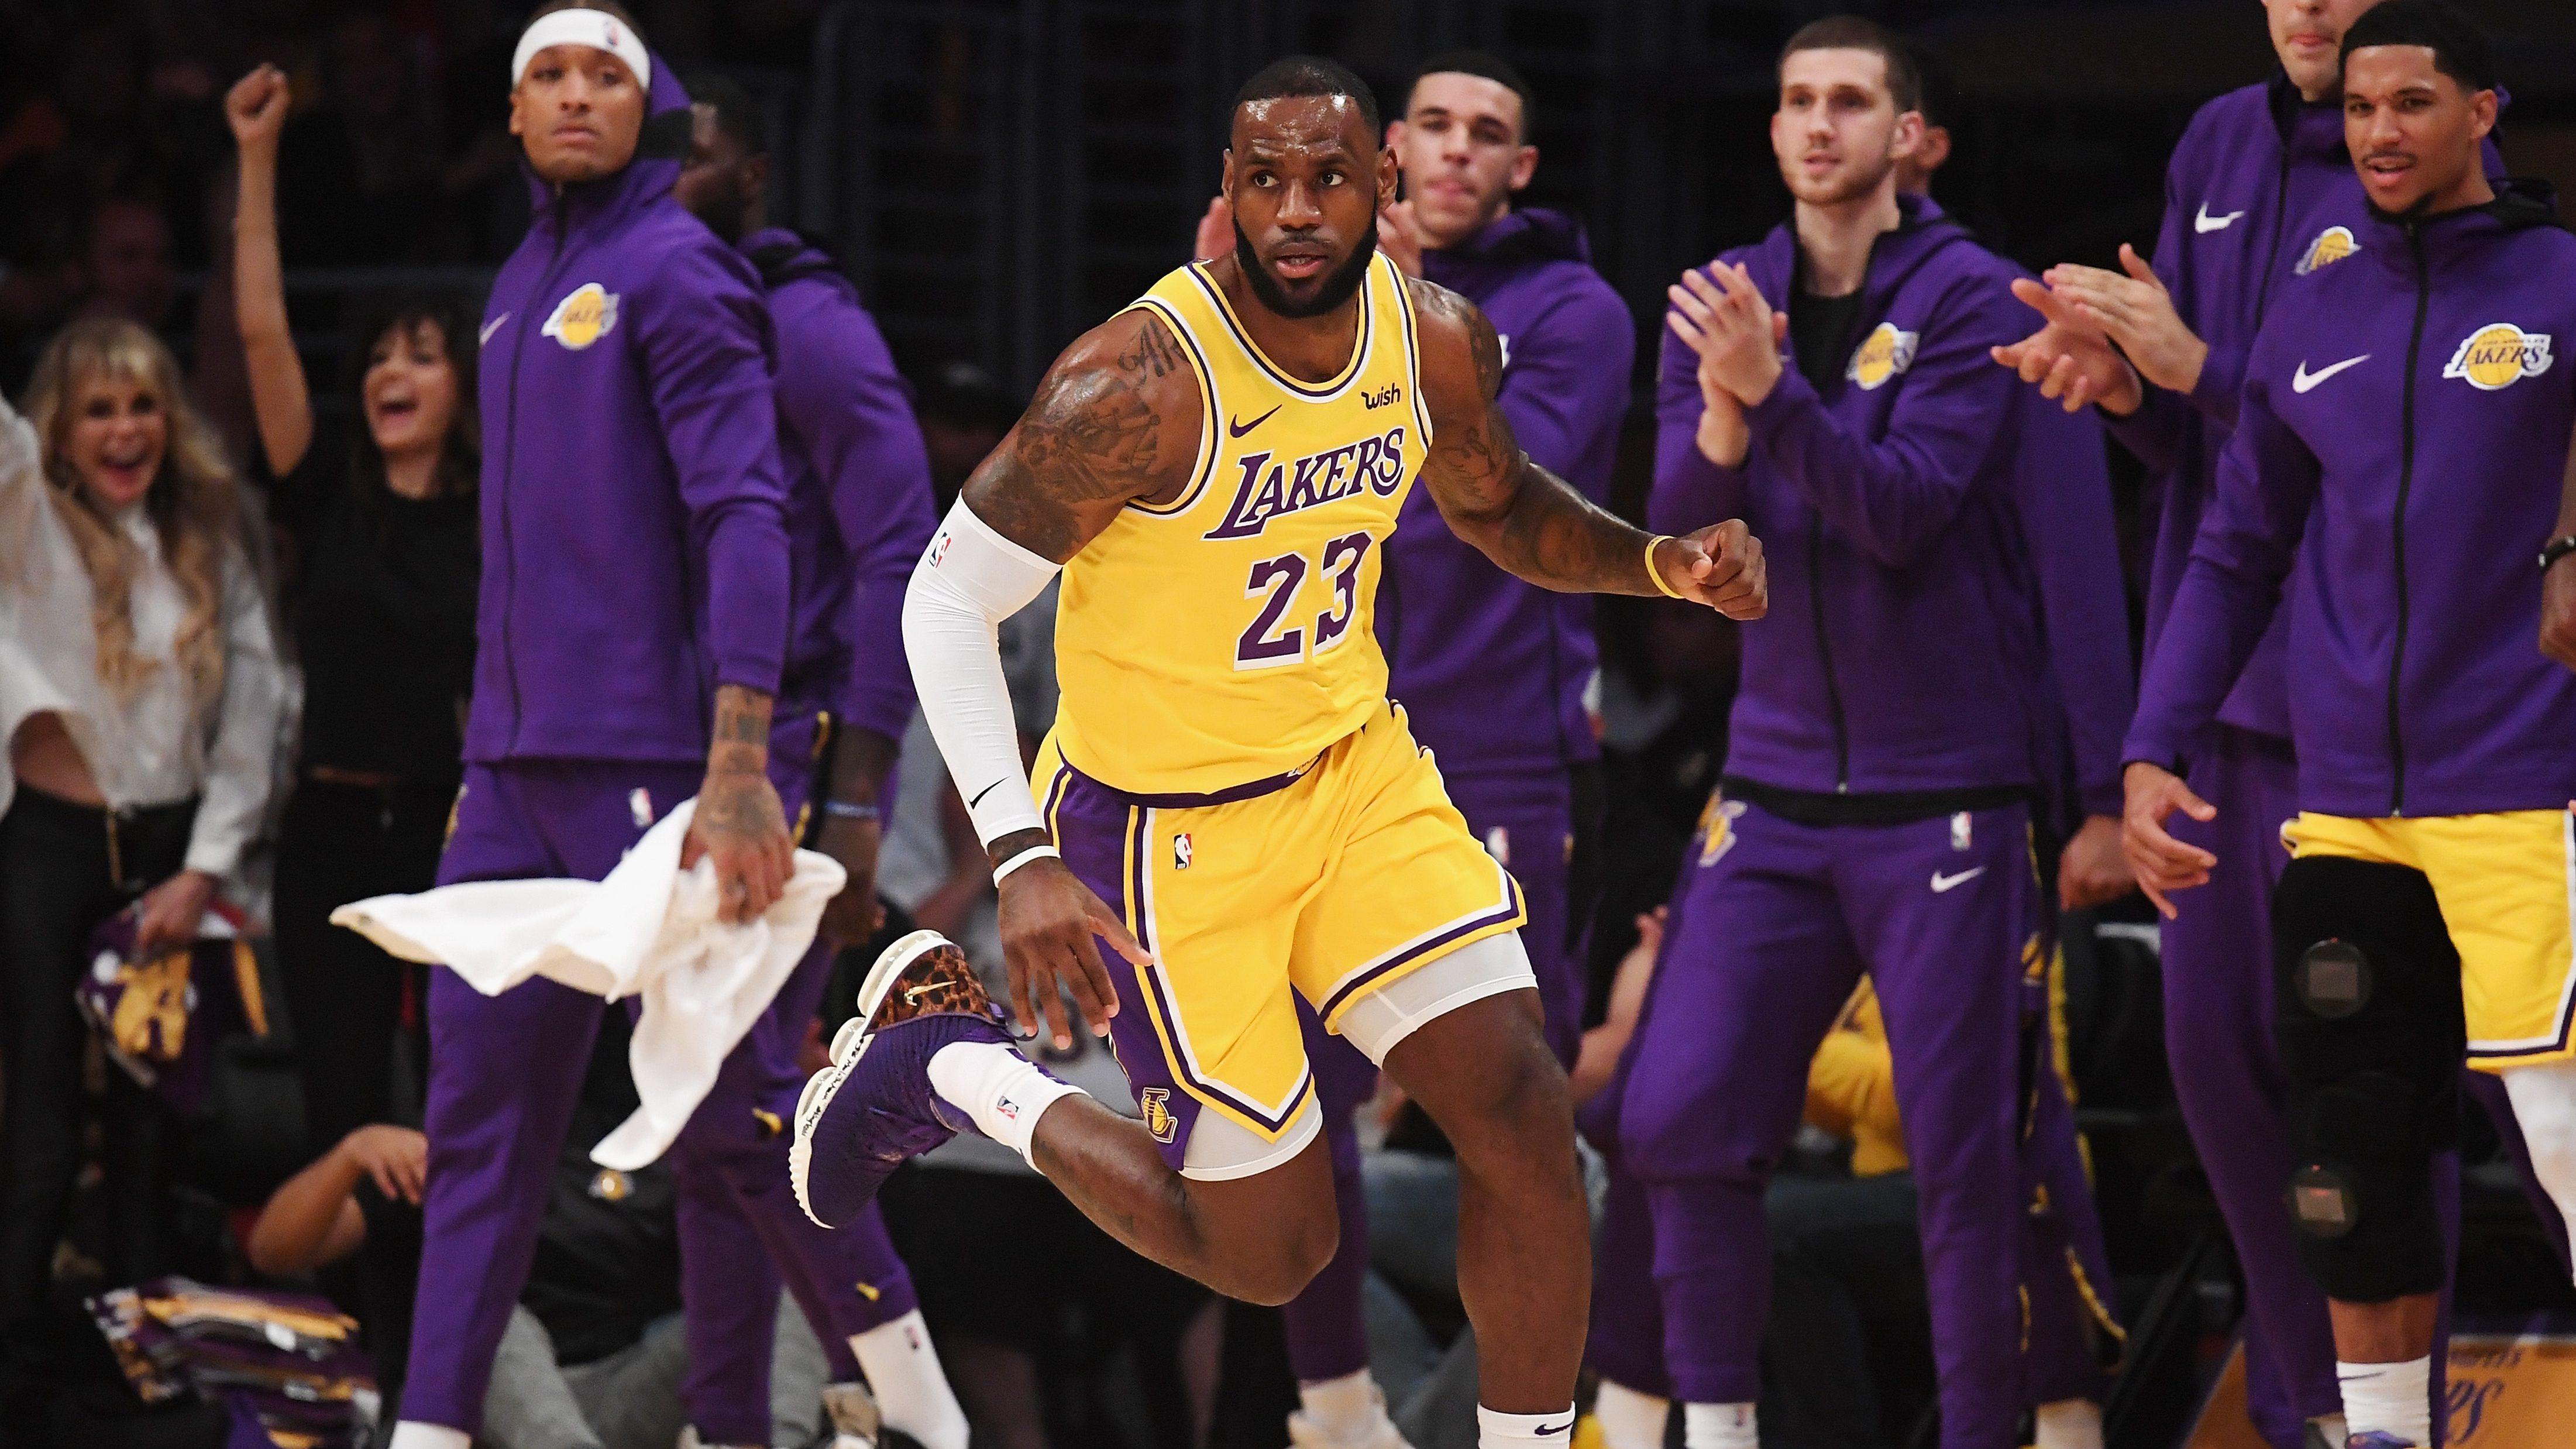 New Lakers Jersey Number on Twitter